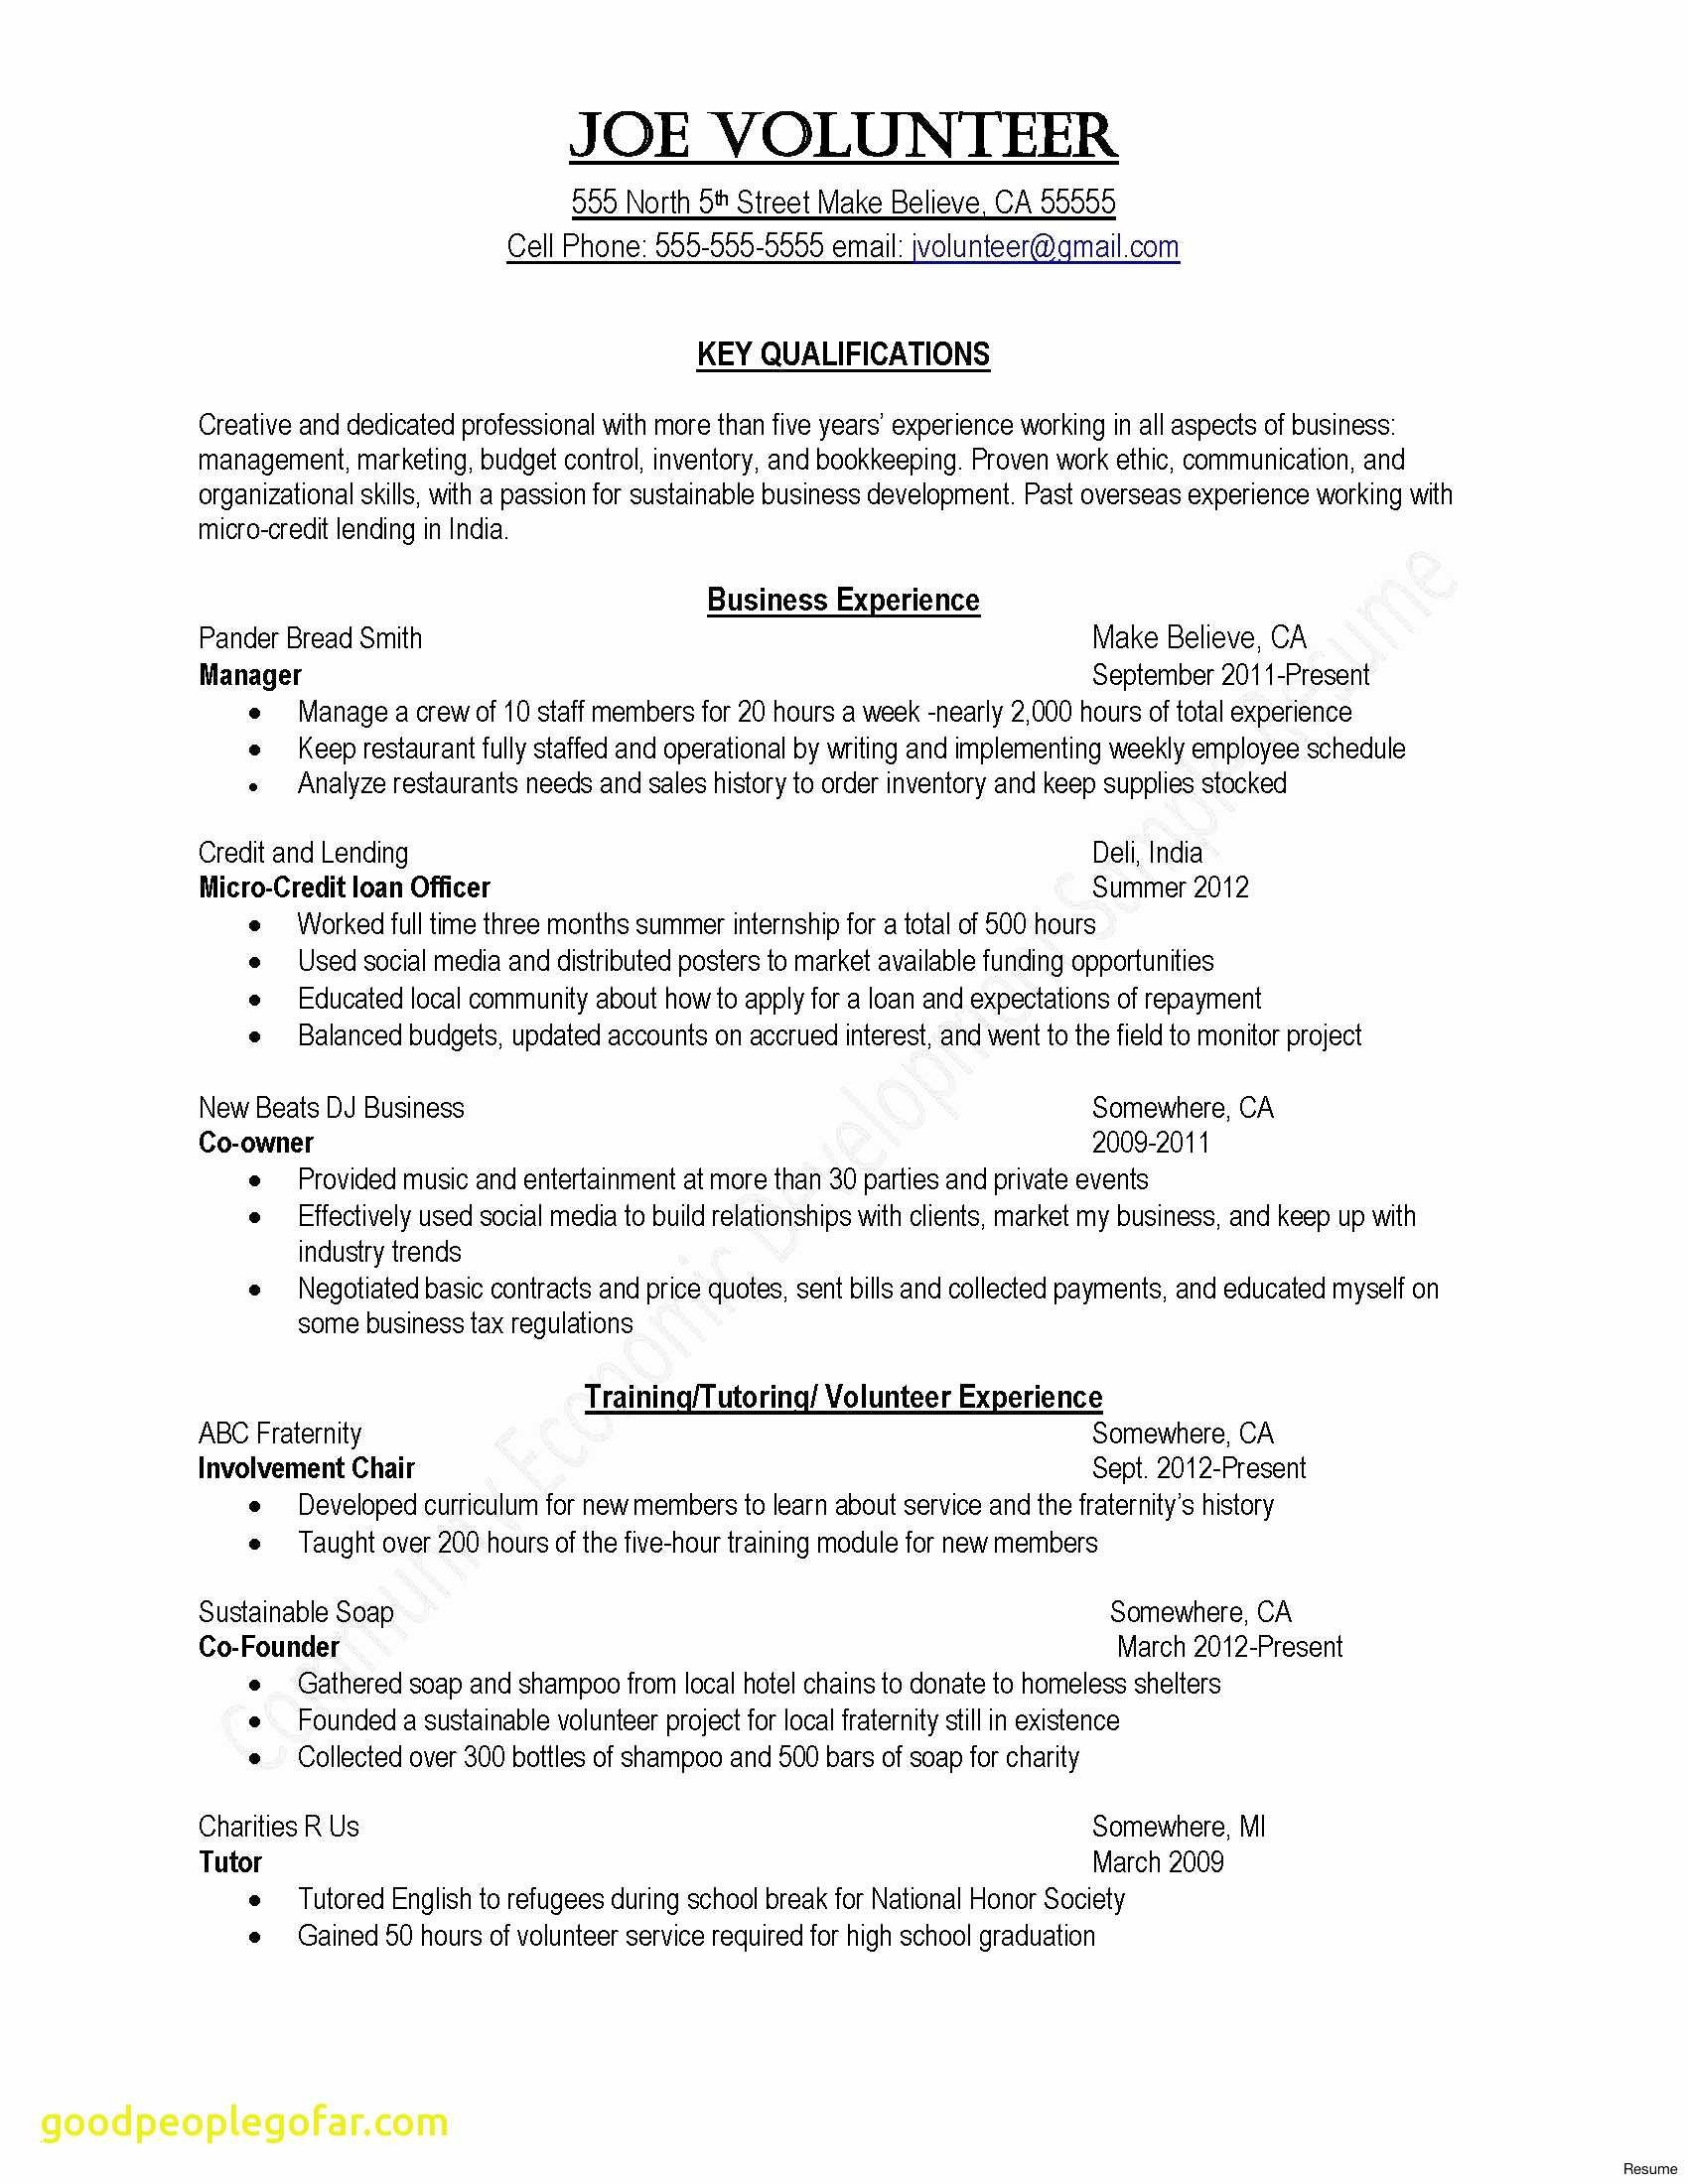 Internship Resume Sample for College Students - Accounting Internship Resume Samples Unique Sample College